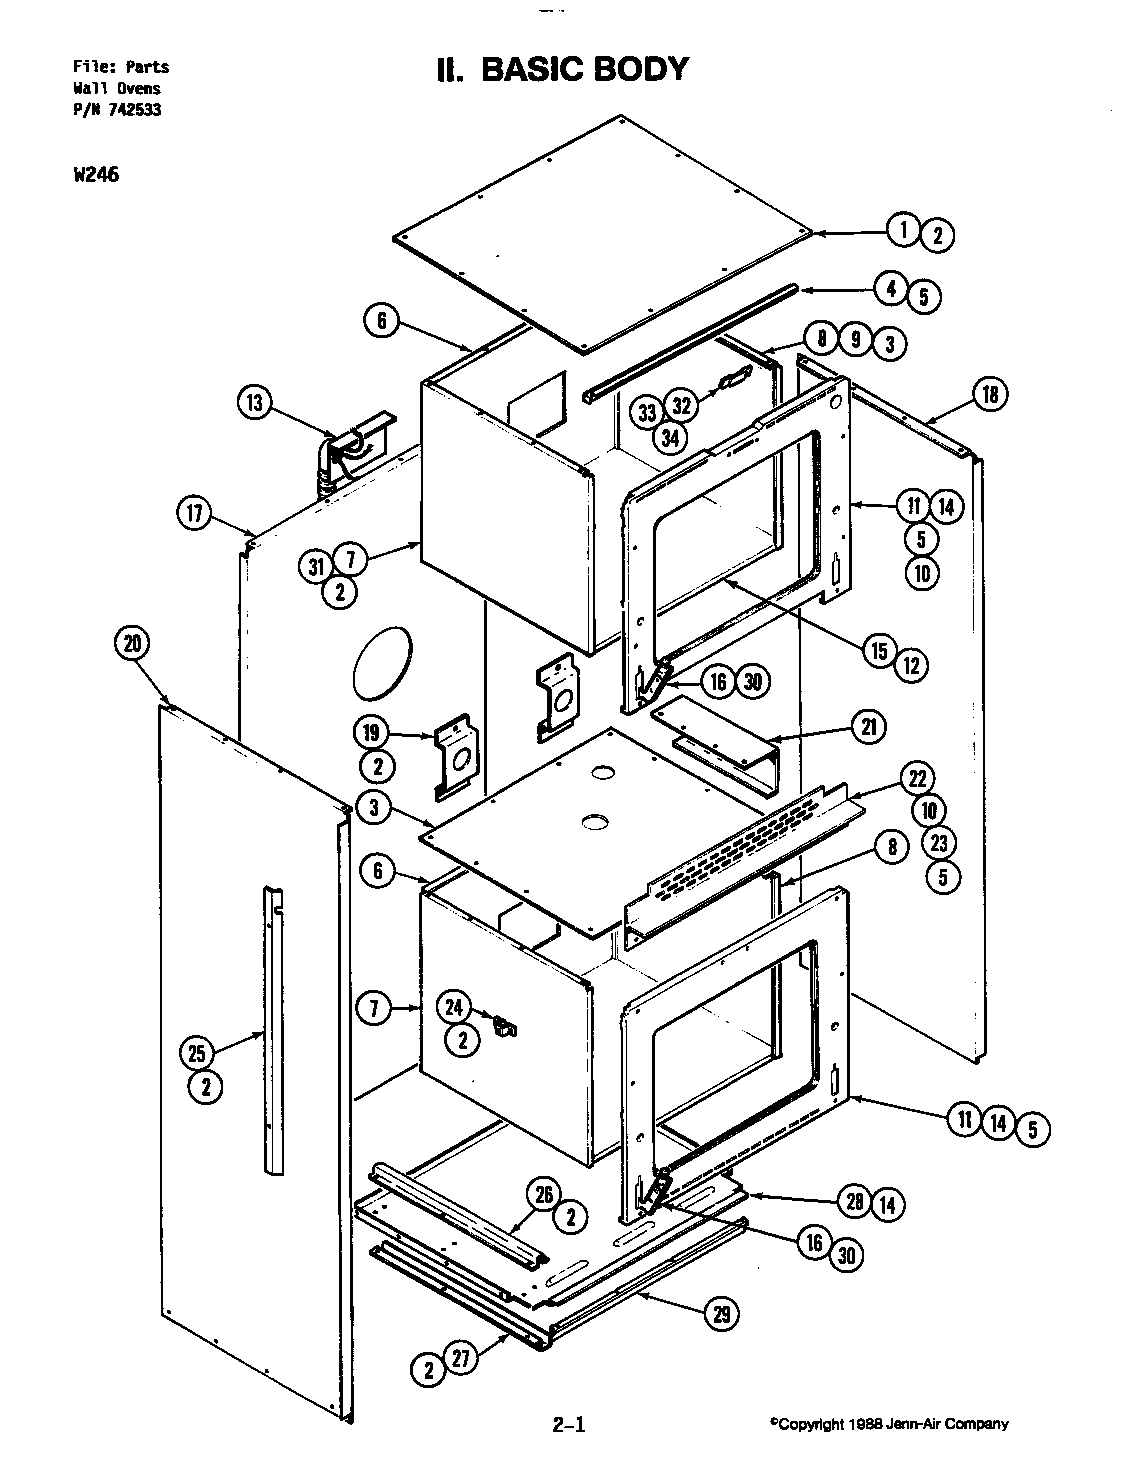 hight resolution of w246 electric wall oven basic body w246 w246 parts diagram